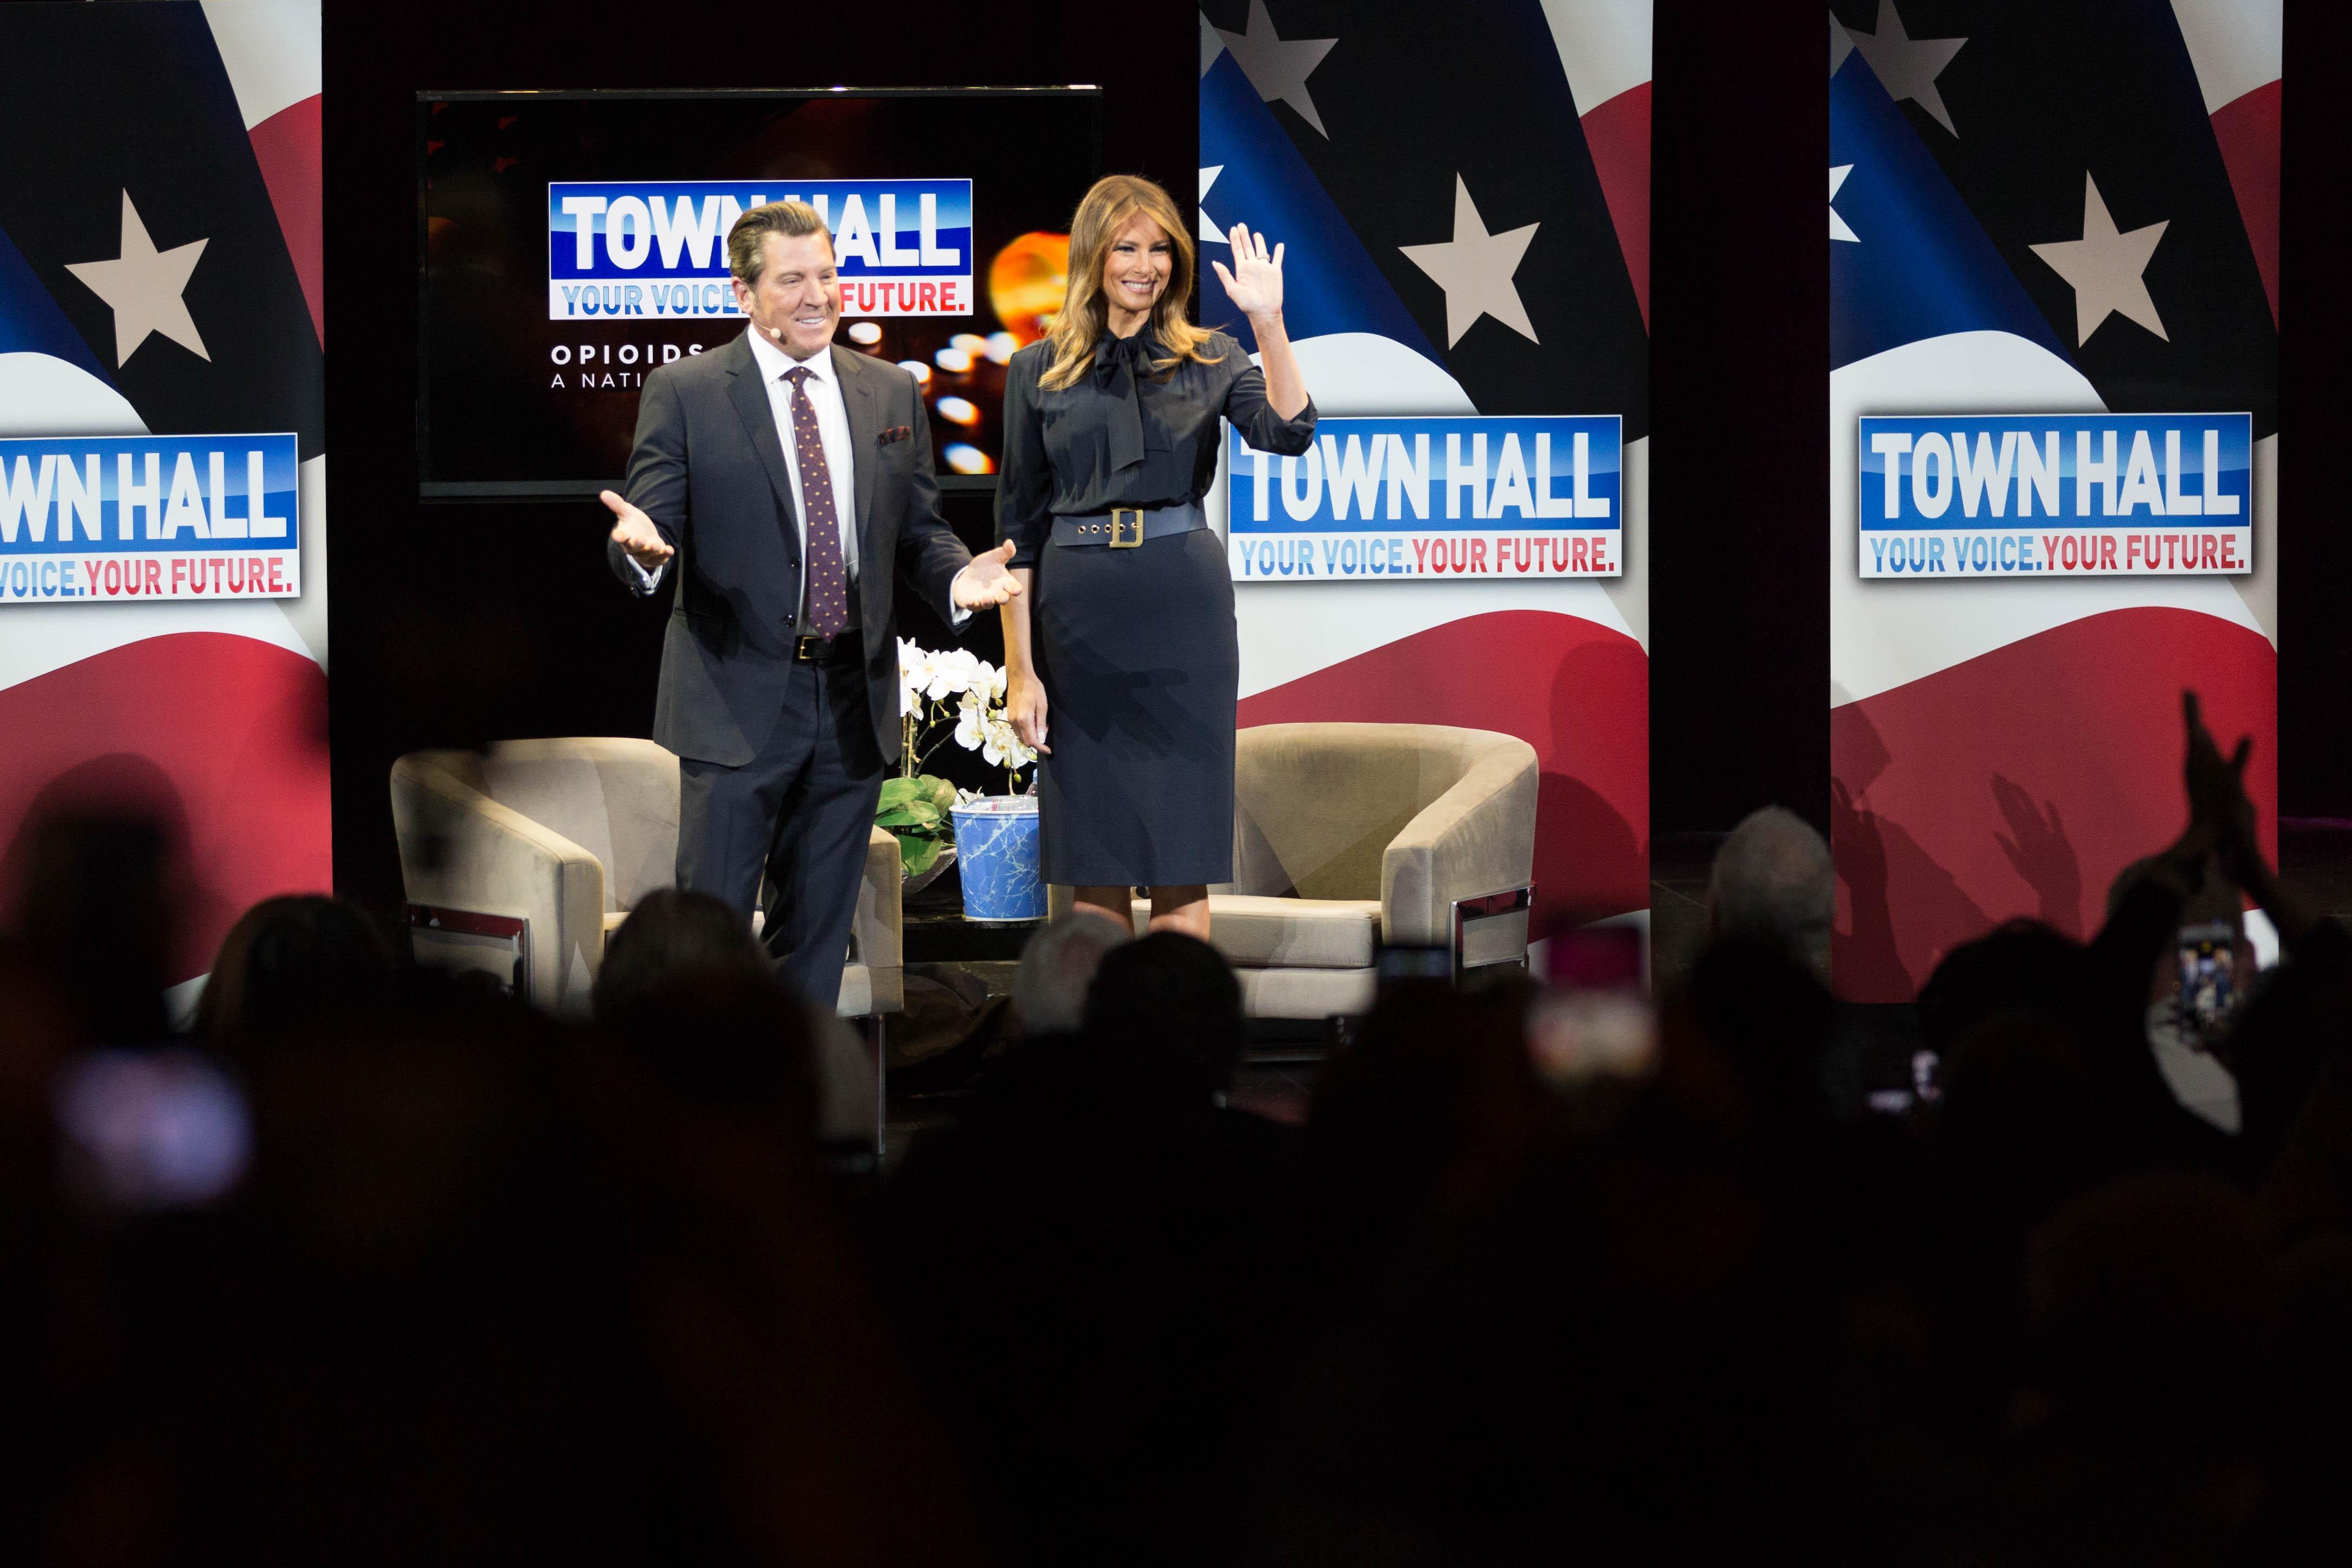 Image of FLOTUS and host Eric Bolling